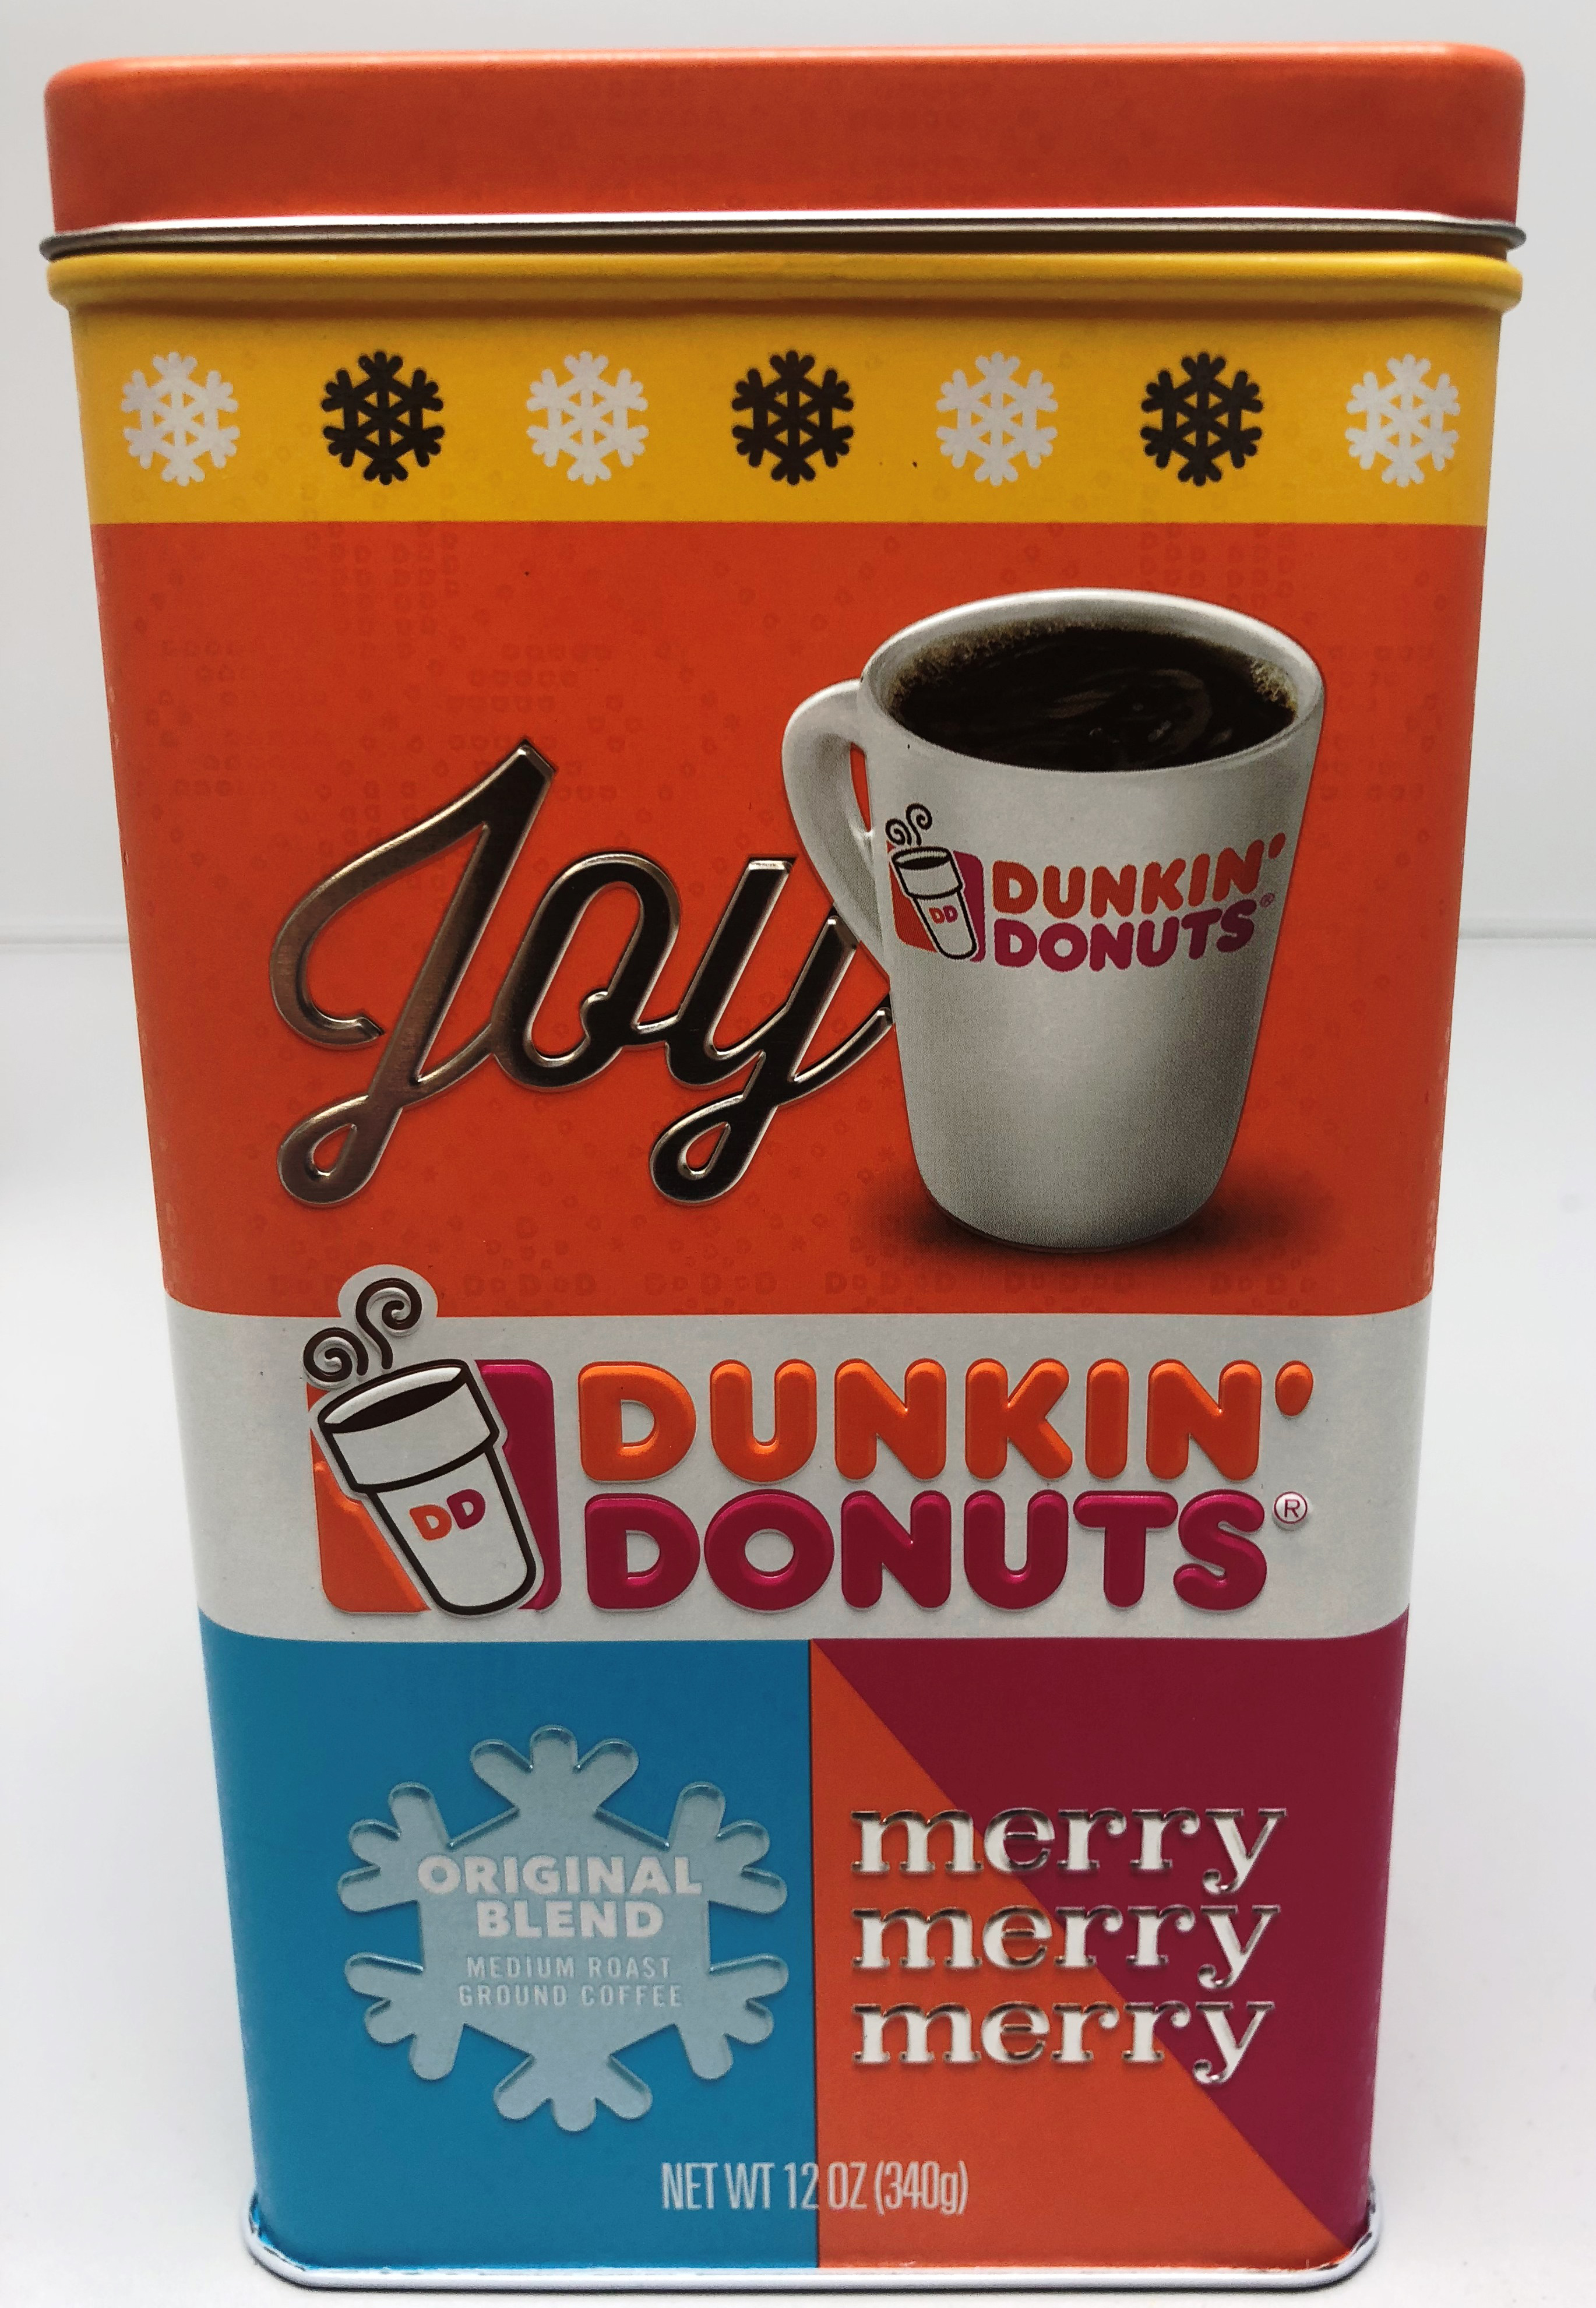 Crown 2018 IMDA Awards - Dunkin Donuts (front view)